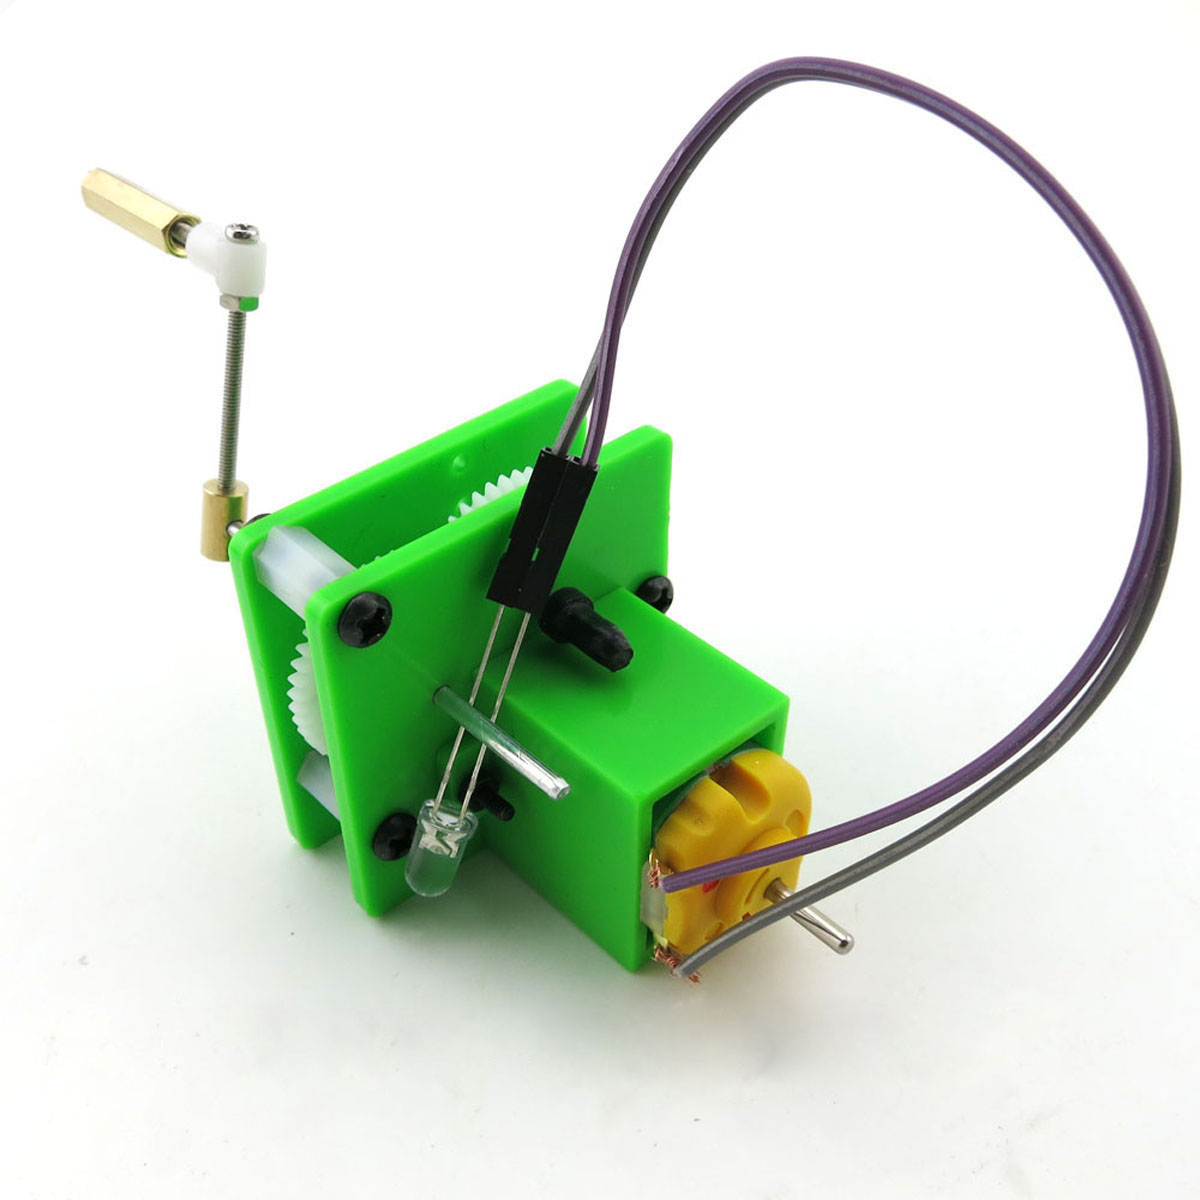 DIY Hand Crank Dynamo Generation Handmade Toy Creative Simple Physics Teaching Resources Kids Early Education Science Experiment